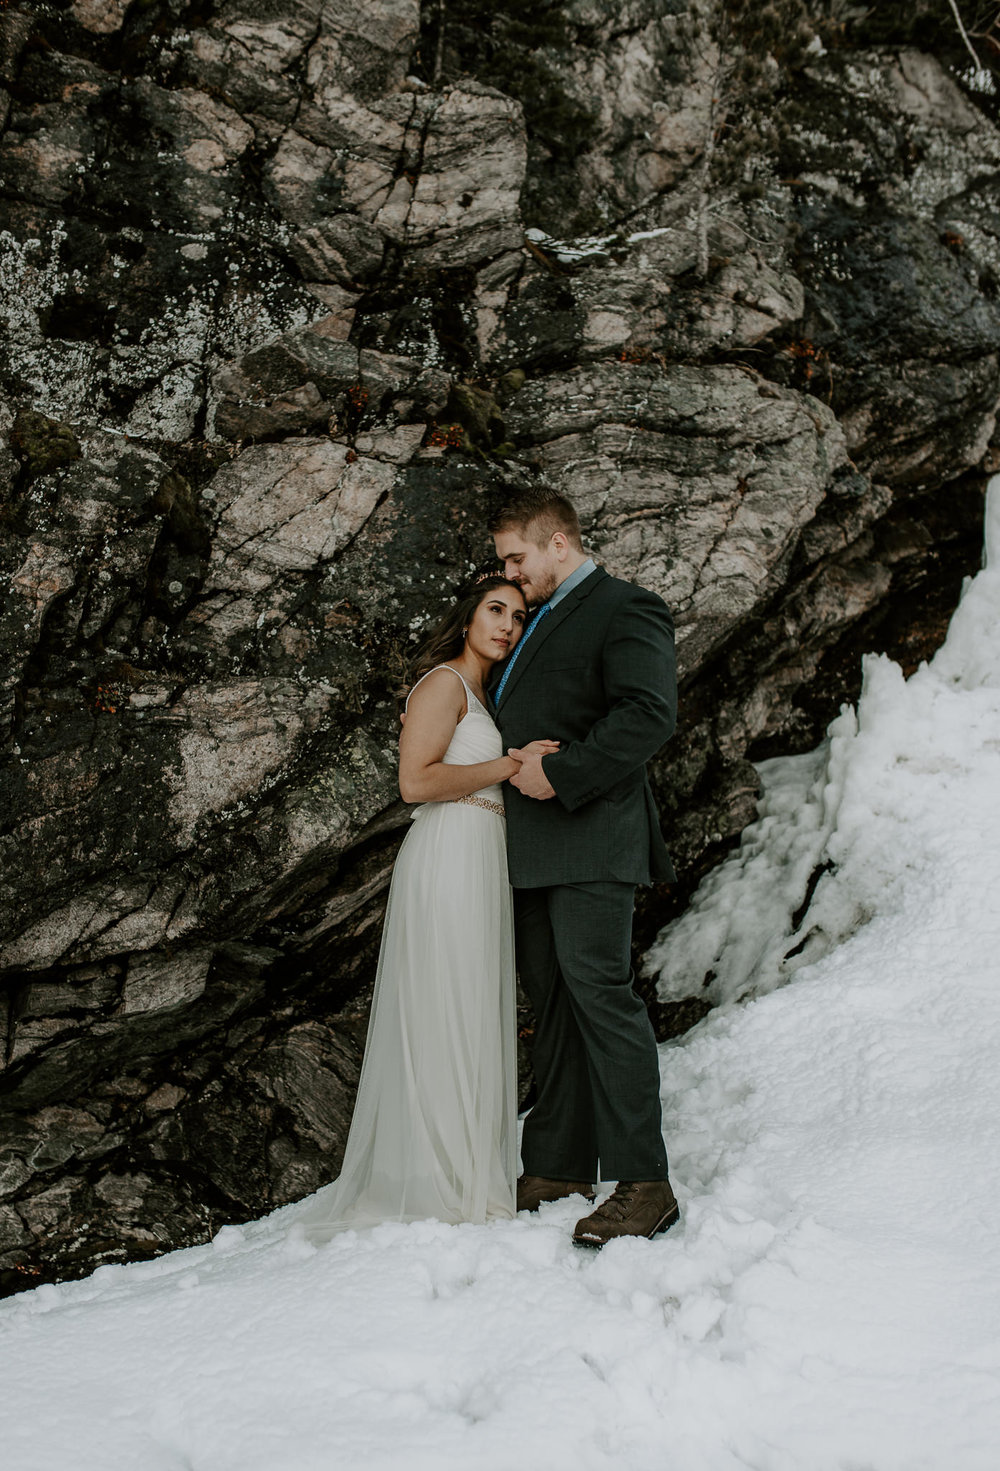 Hiking adventure elopement in Colorado